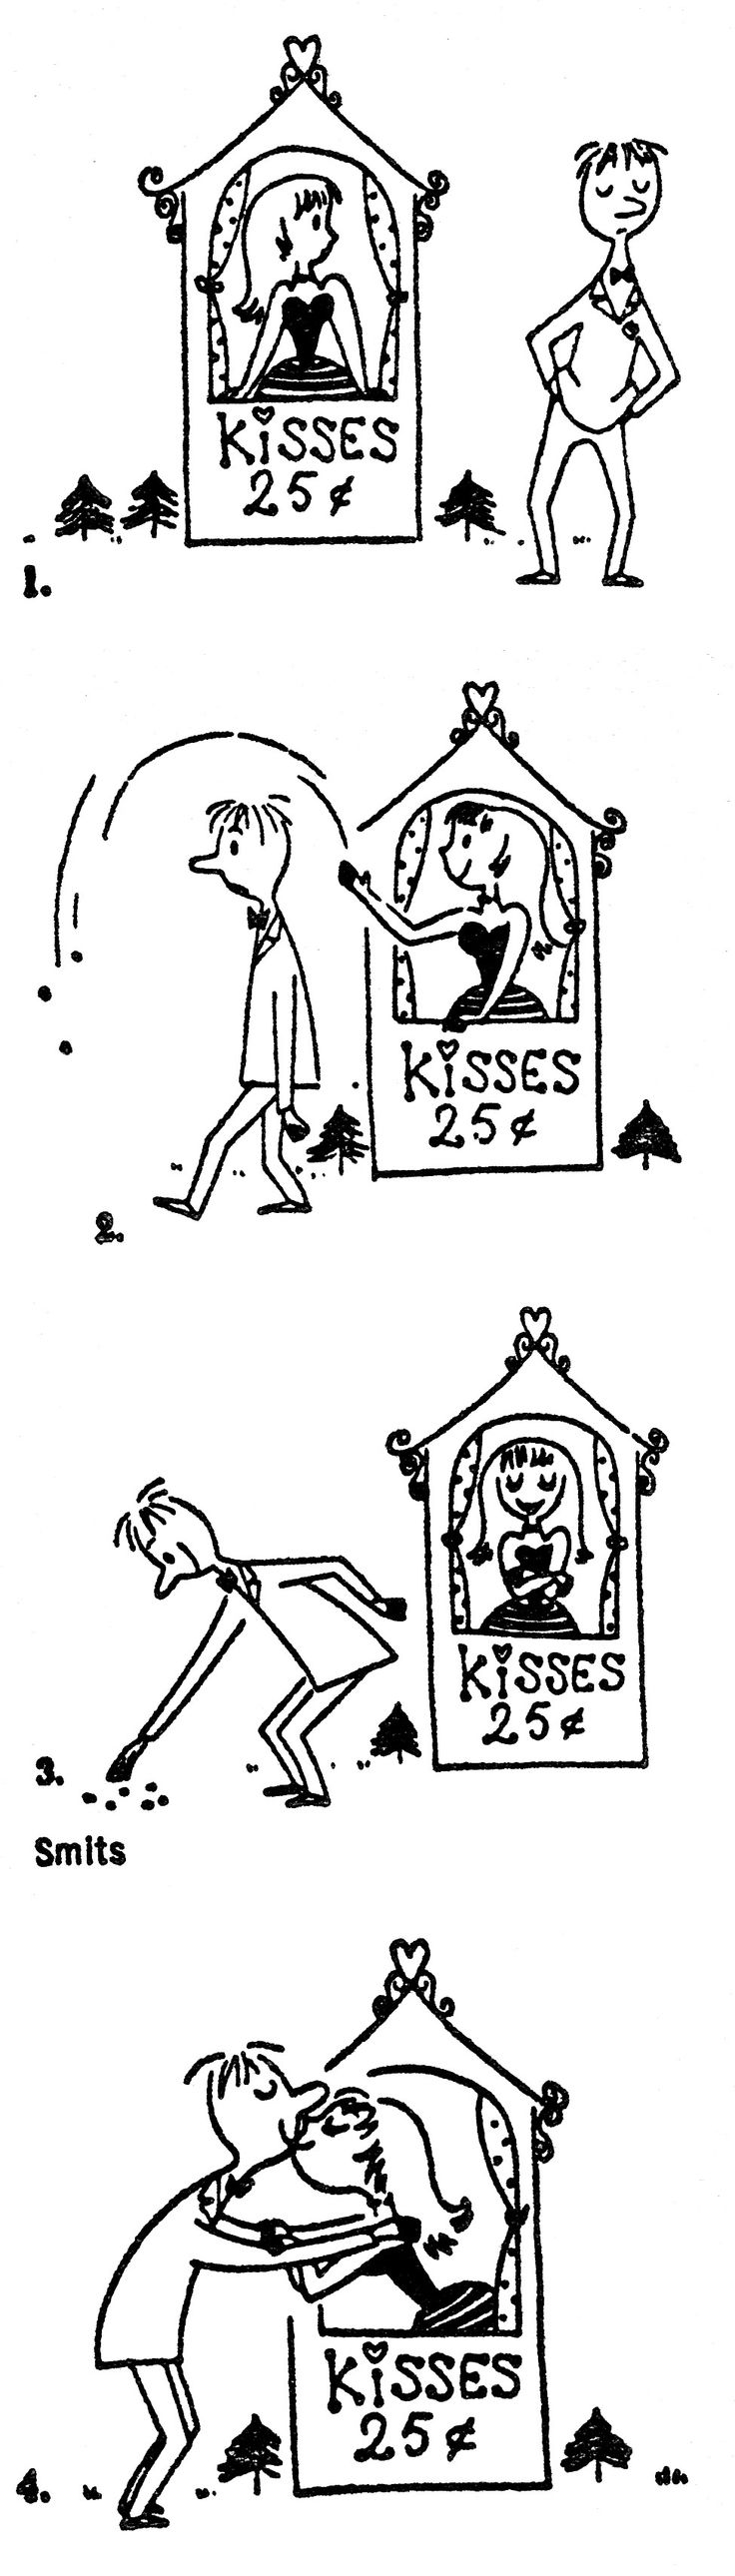 Ton Smits Kissing Booth Cartoon ♥